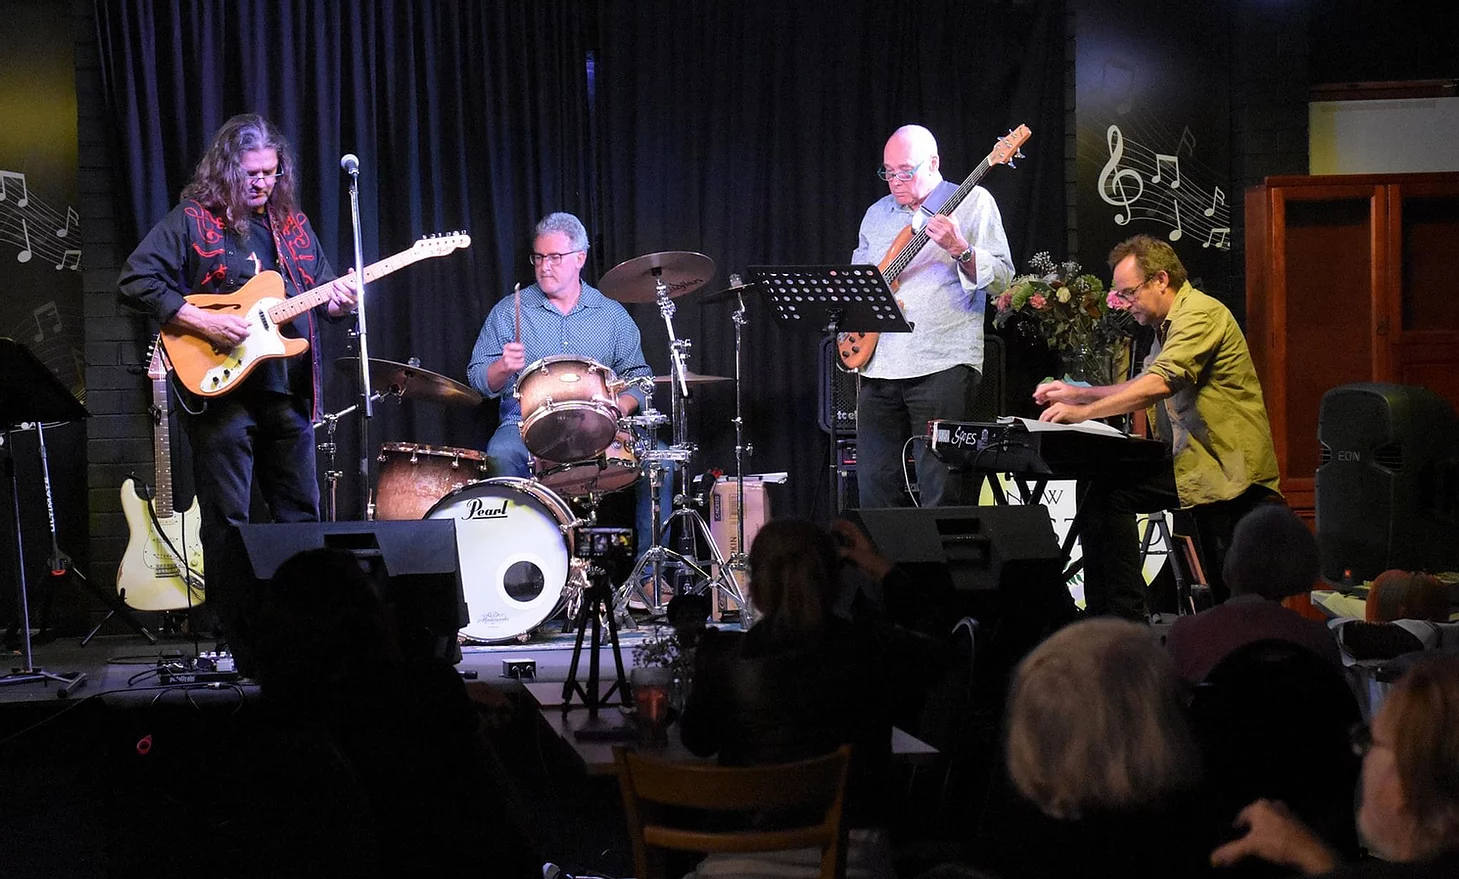 Craig Claxton and his fabulous rhythm section ... sometimes known as The Barbarians at the Azure Blue Album preview. L-R Craig Claxton (guitar & vox), John Postlethwaite (dums), Kevin Howard (bass), Brendan St Ledger (keyboards).